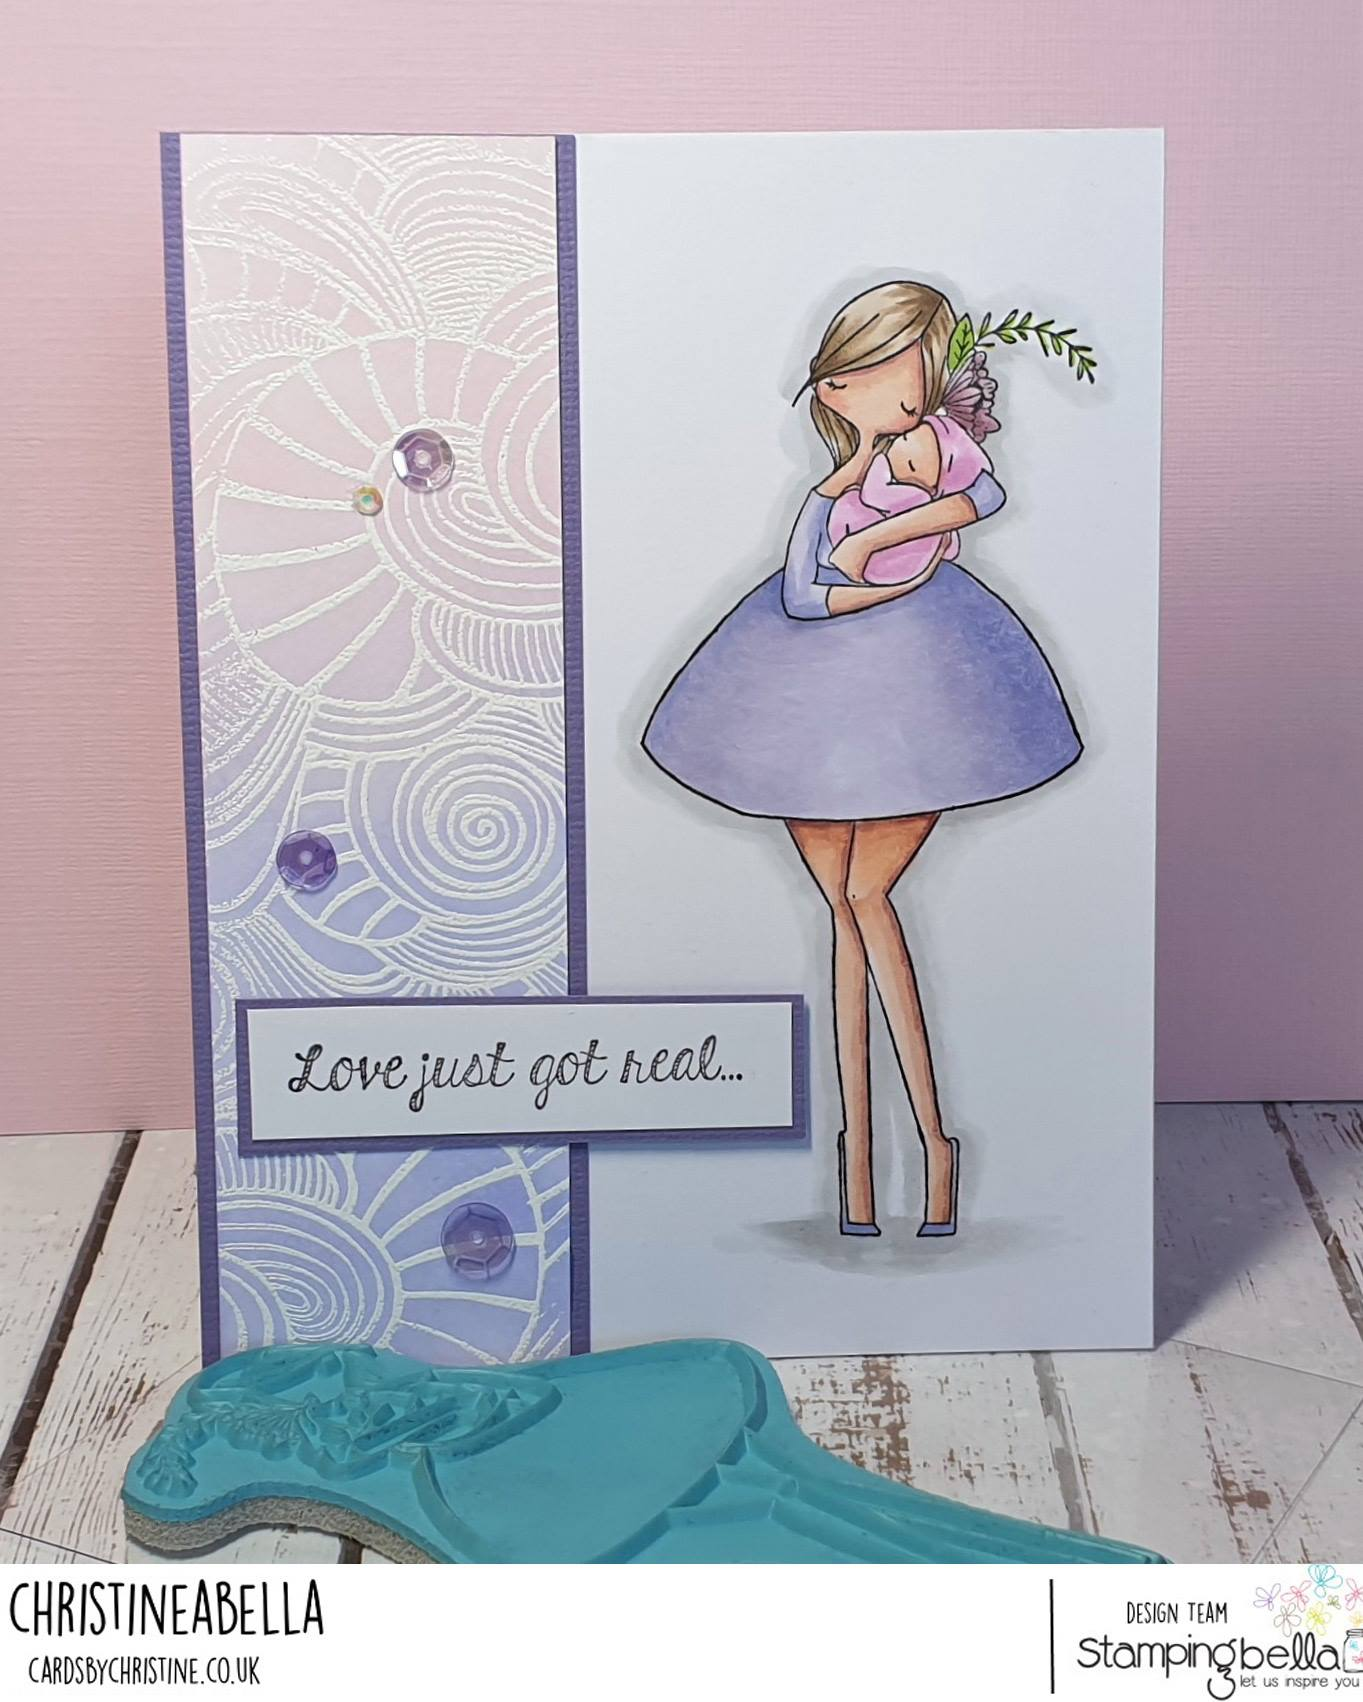 WWW.STAMPINGBELLA.COM: RUBBER STAMP USED: CURVY GIRL WITH A NEWBORN.  CARD BY CHRISTINE LEVISON